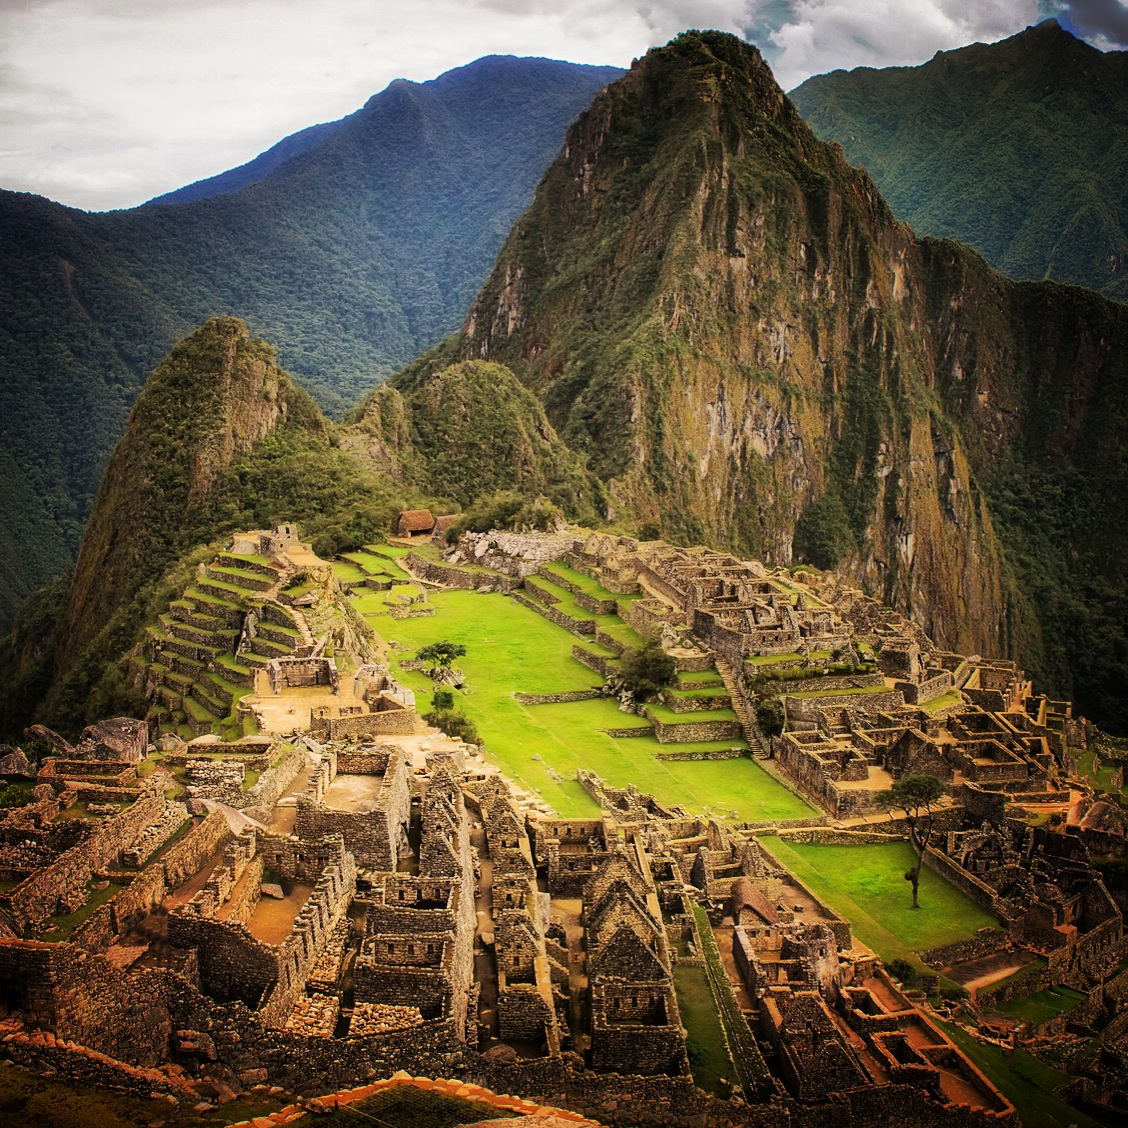 Last but not least... come September, this will be my mountain view!!!!Machu Picchu in Peru. This will be my first overnight trek in the jungle, and I'm sooo excited! Not to mention, my first trip out of the states... I don't include Canada, because I grew up in the U.P. of Michigan, which is basically Canada, haha. Two whole weeks in Peru... this is going to be an adventure!  Alright, I think I have given you enough to digest for now. Till next time!